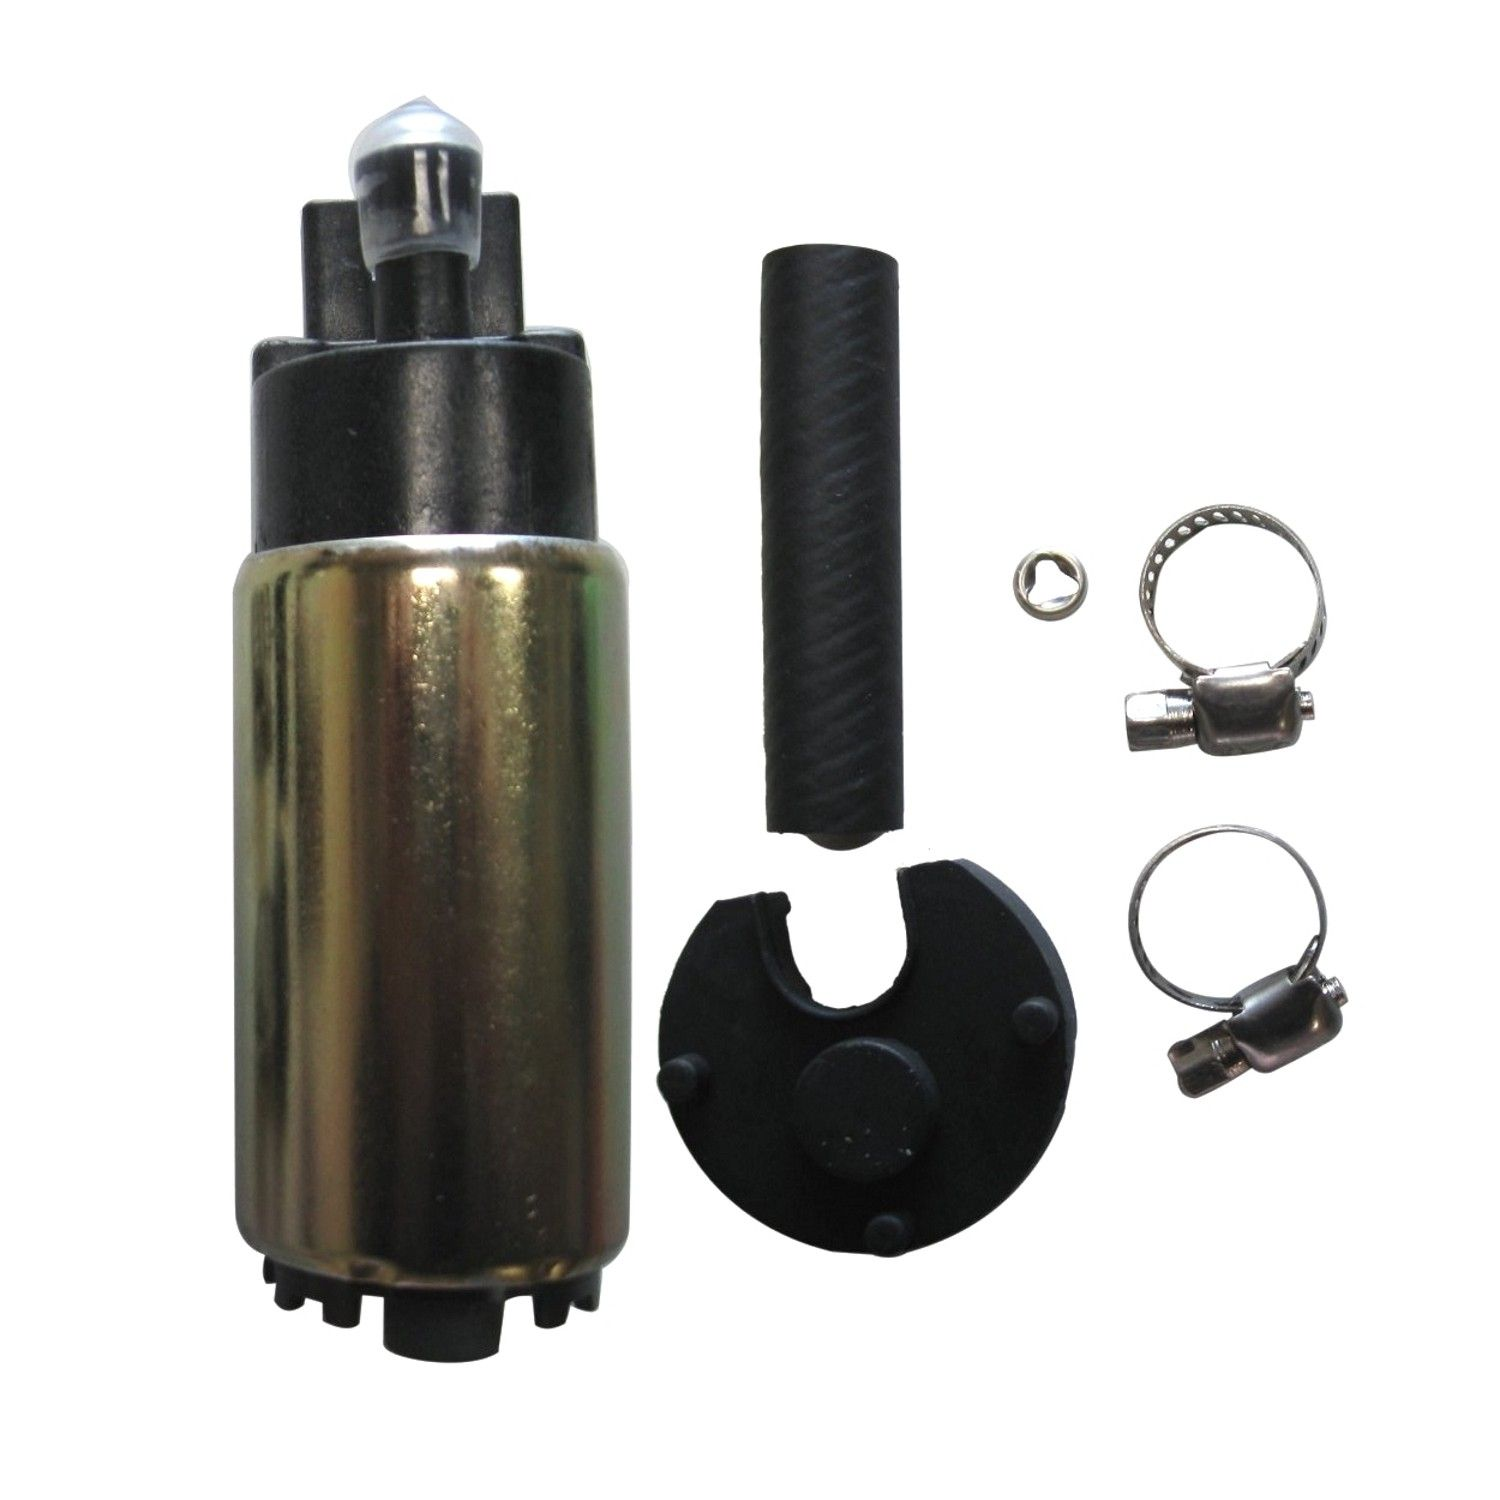 Jeep Wrangler Electric Fuel Pump Replacement Airtex Autobest Electrical 1993 6 Cyl 40l F4346 W Plug Type Connector Strainer Required To Validate The Warranty F311s